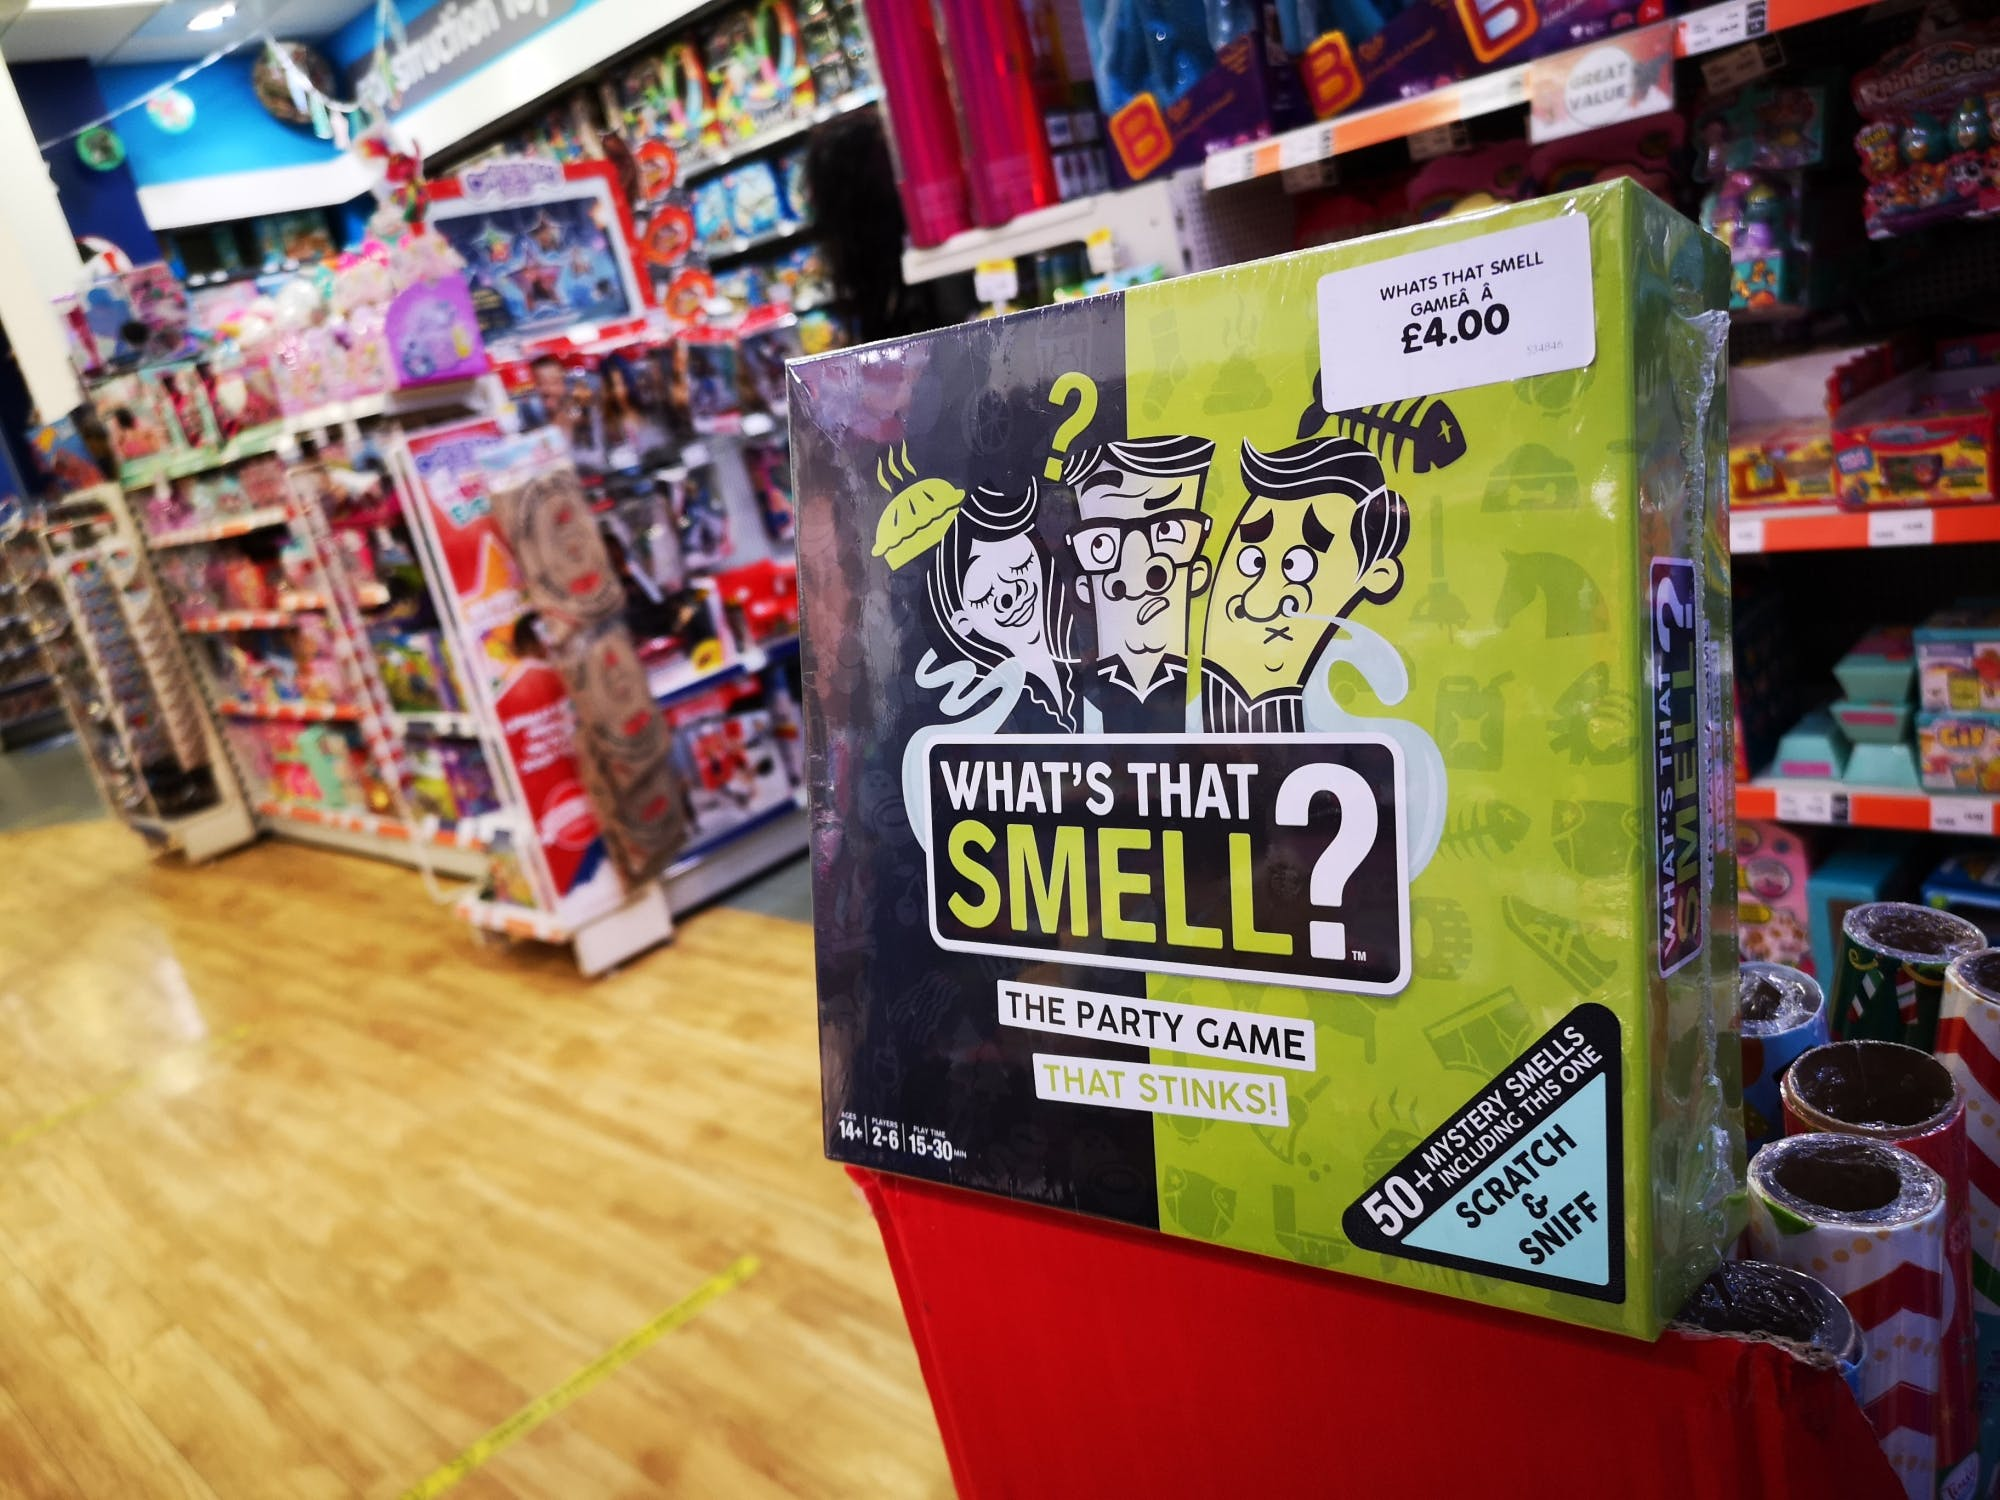 This could be THE game of Christmas - and it's set to cause a stink! On sale too at £4 The Entertainer